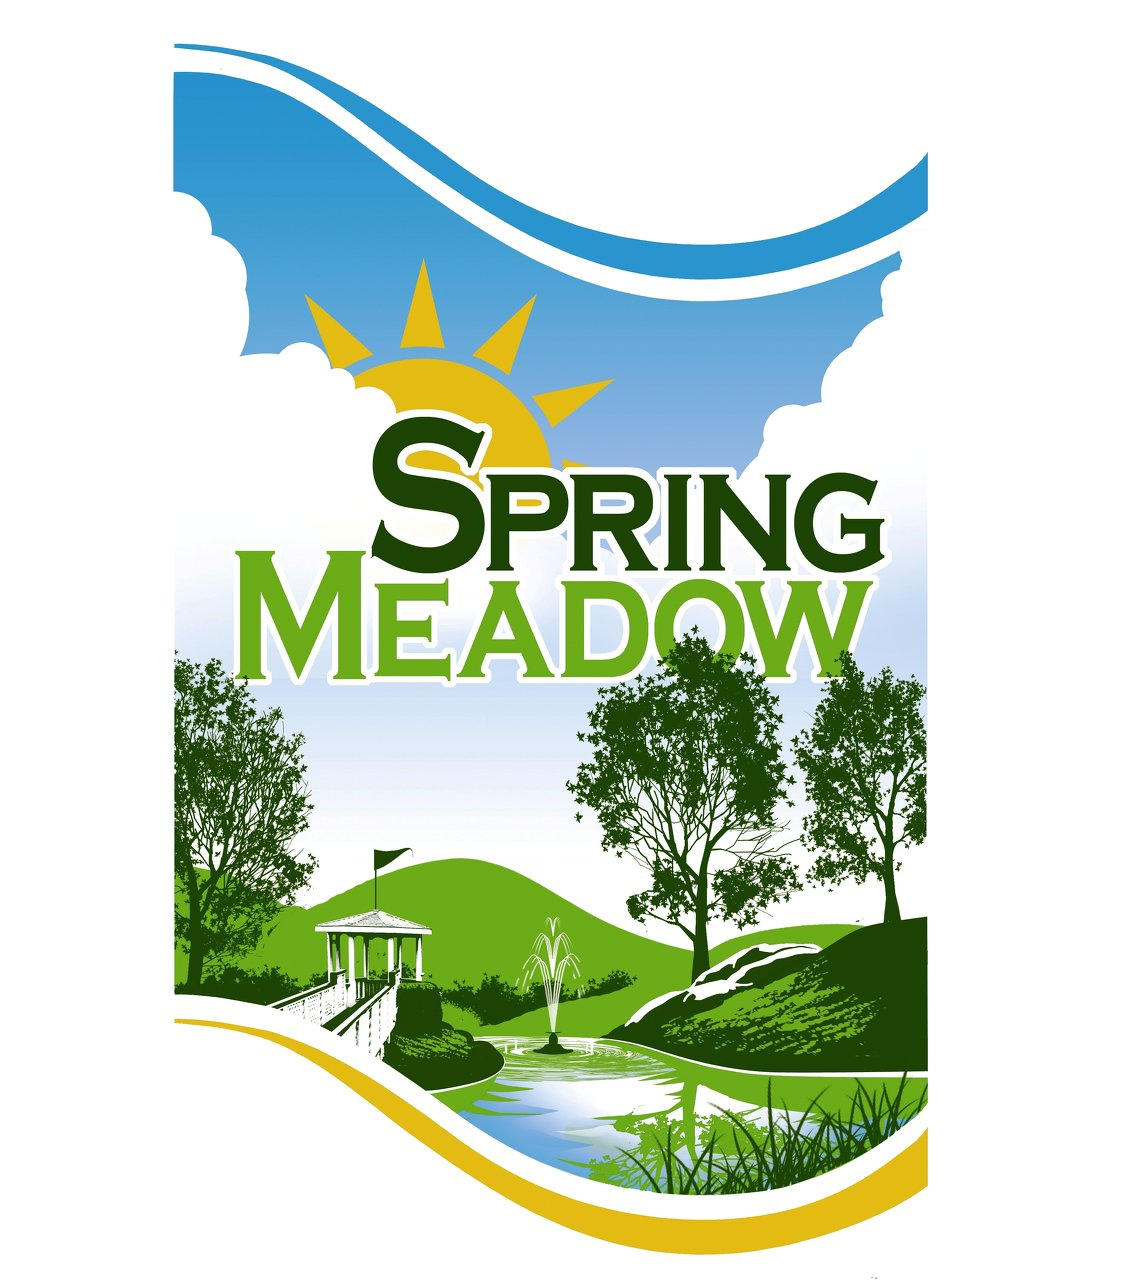 Spring Meadow Luxury Apartment Homes